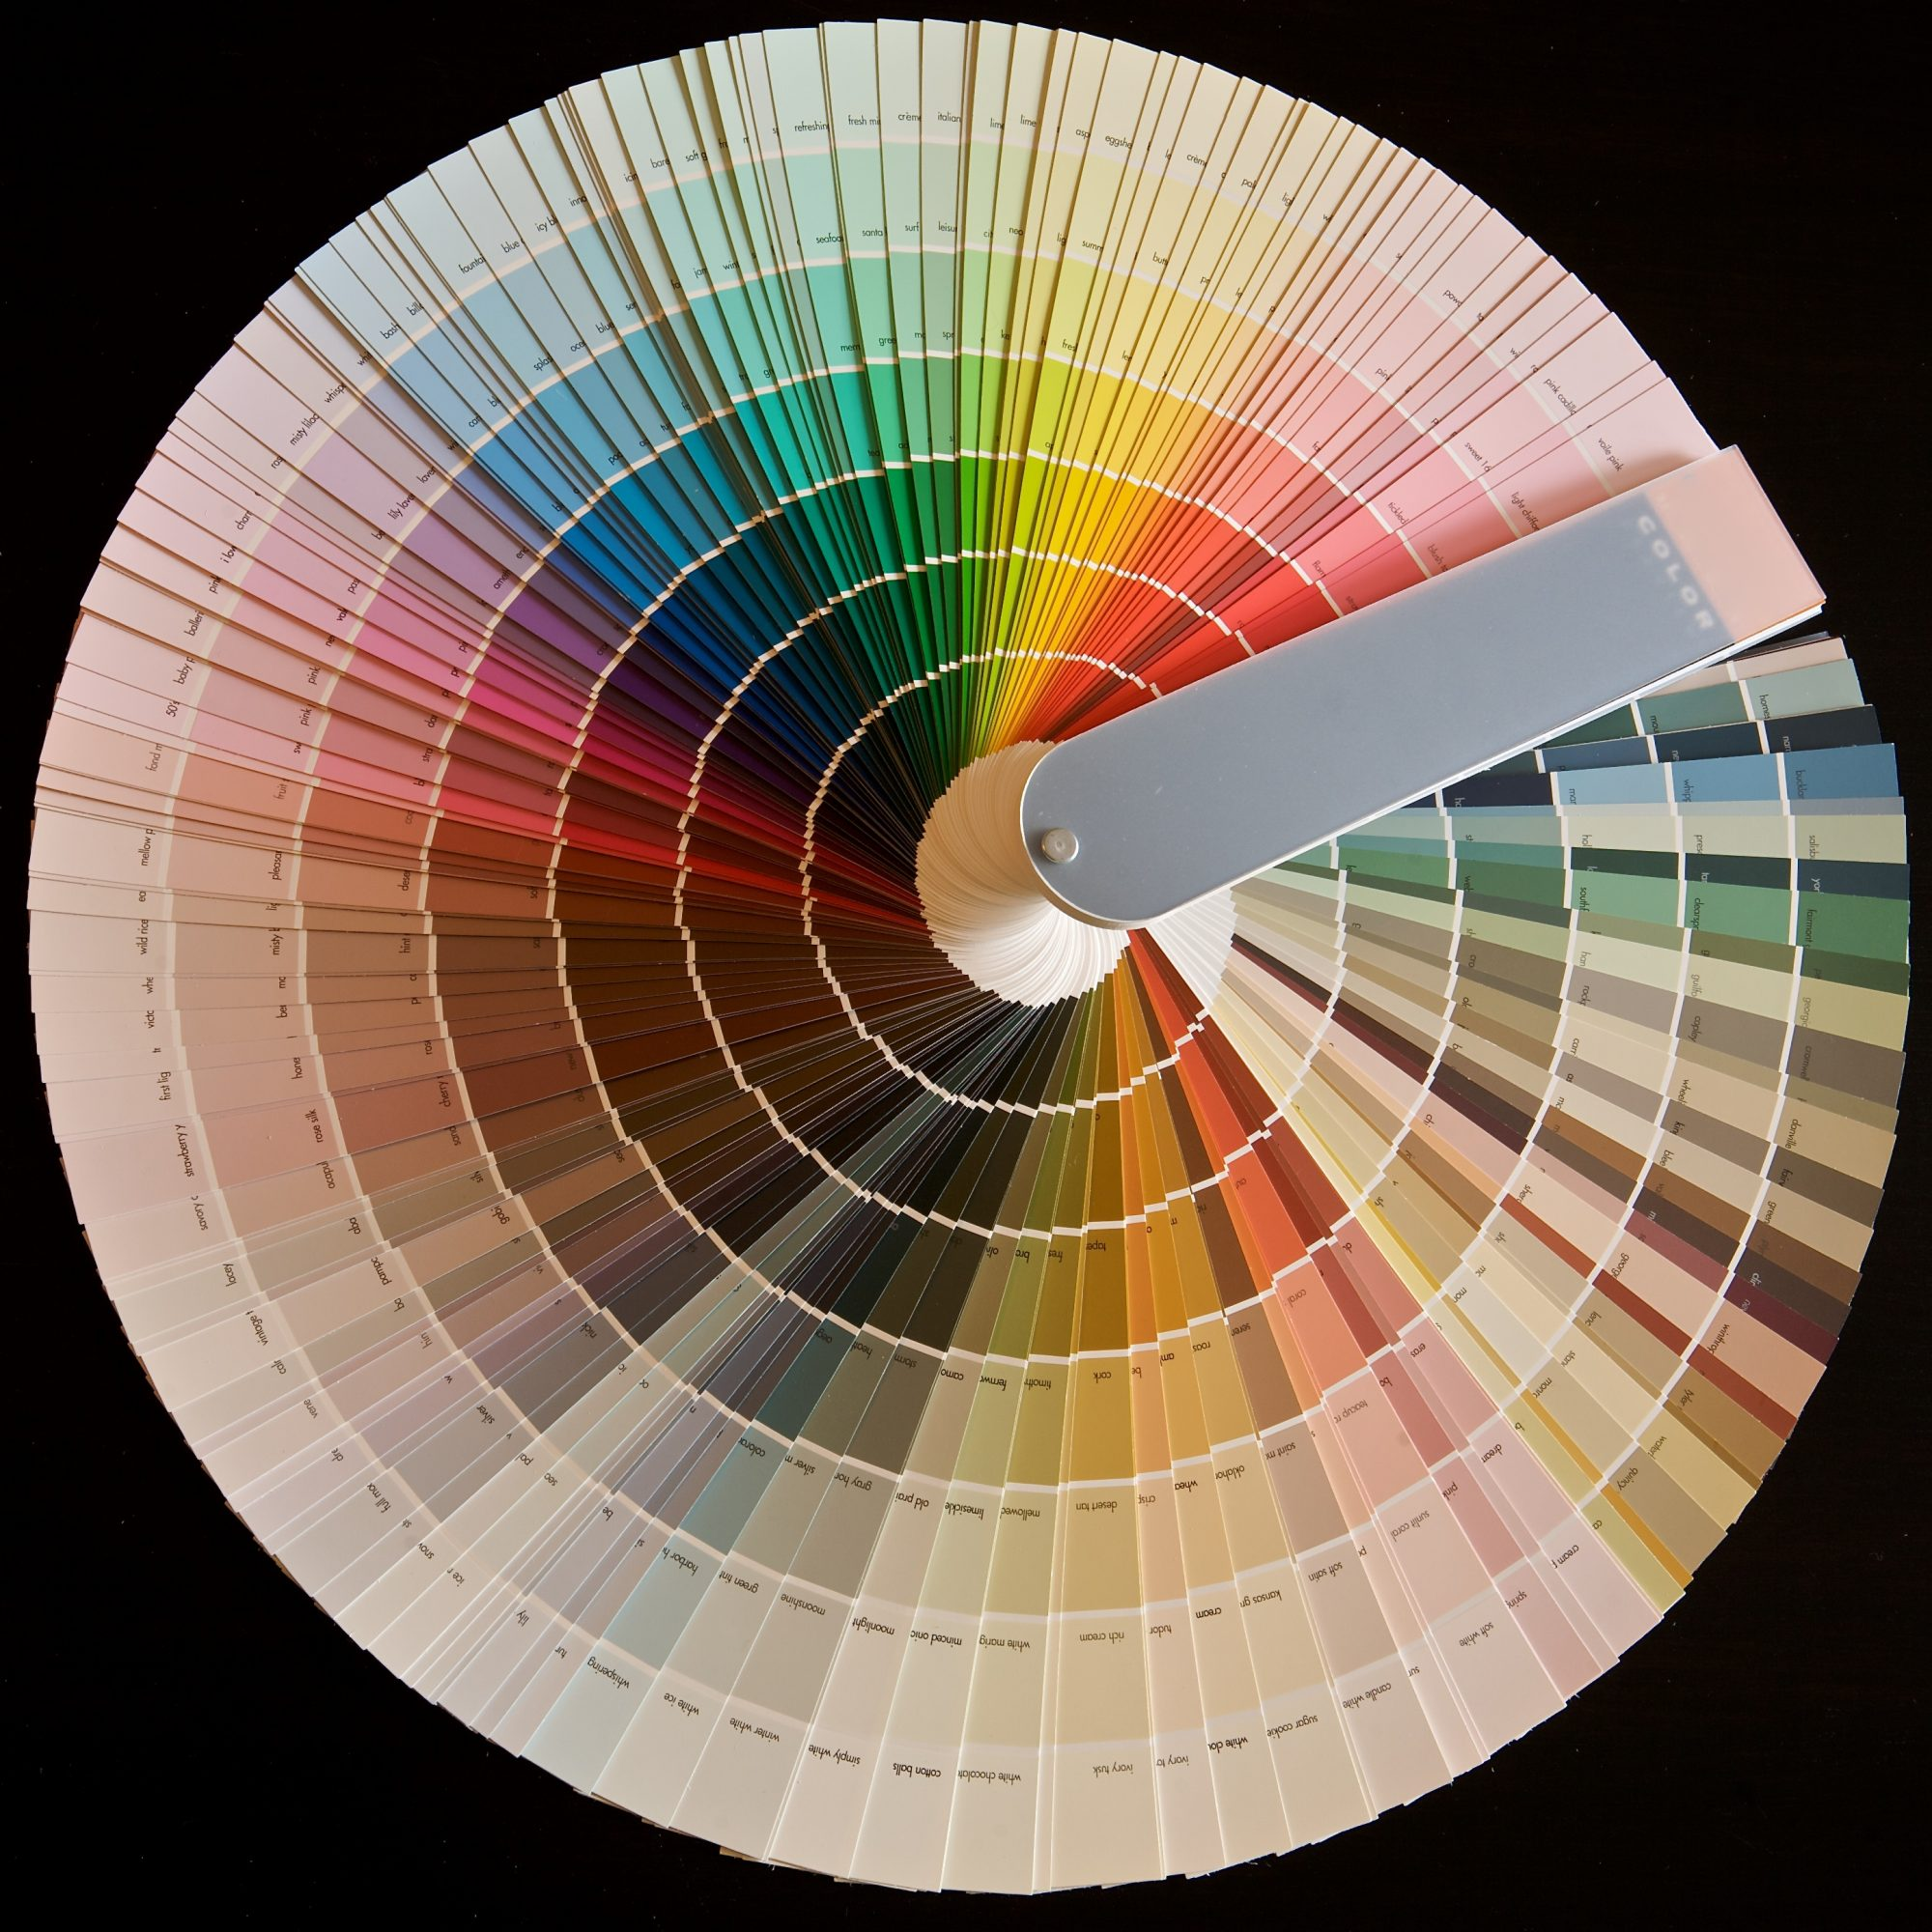 pantone-color-wheel-ugly-cigarette